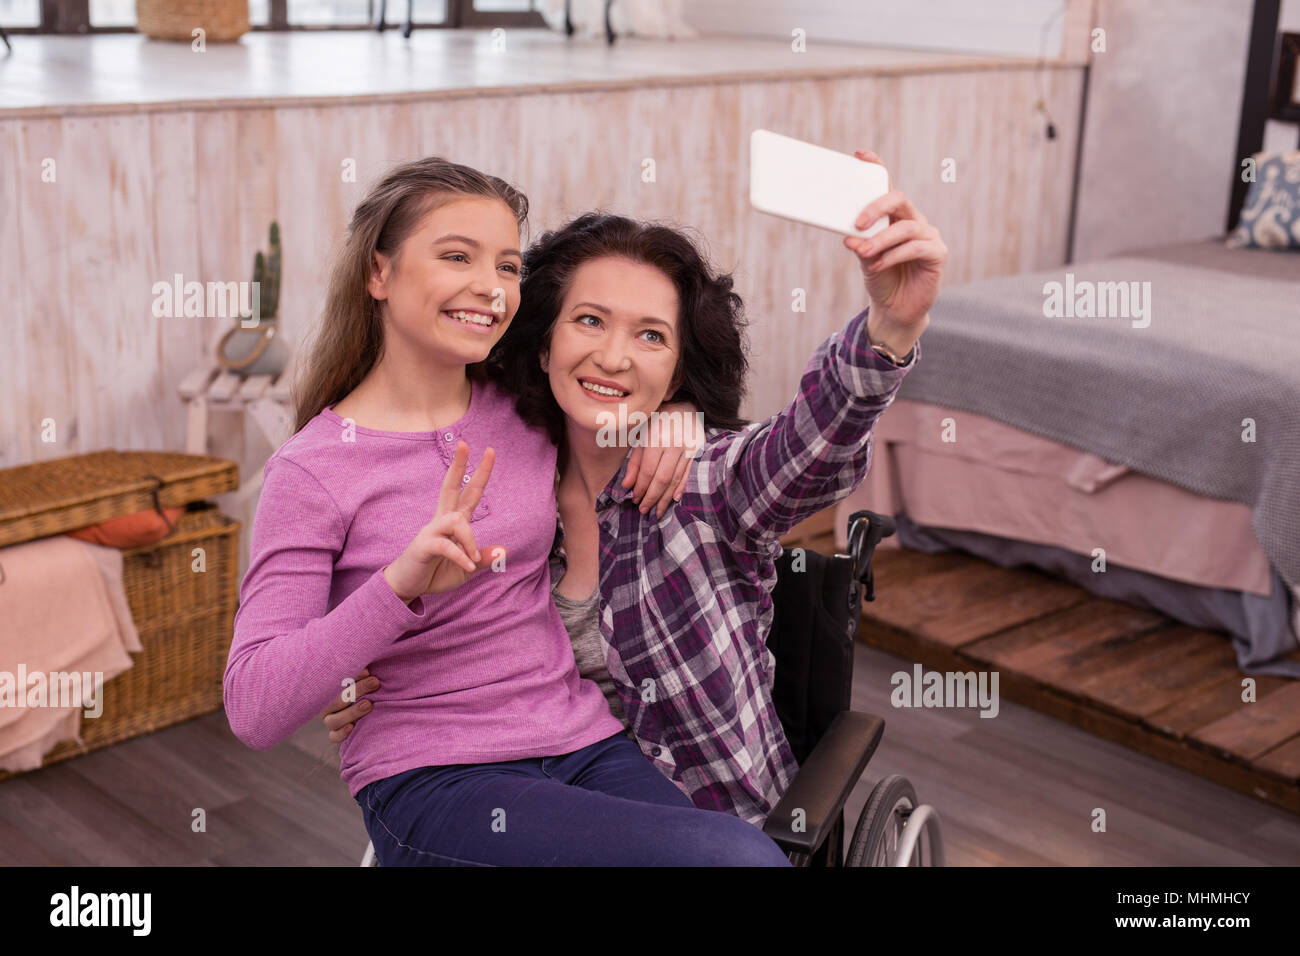 Joyful crippled woman and girl taking selfie - Stock Image